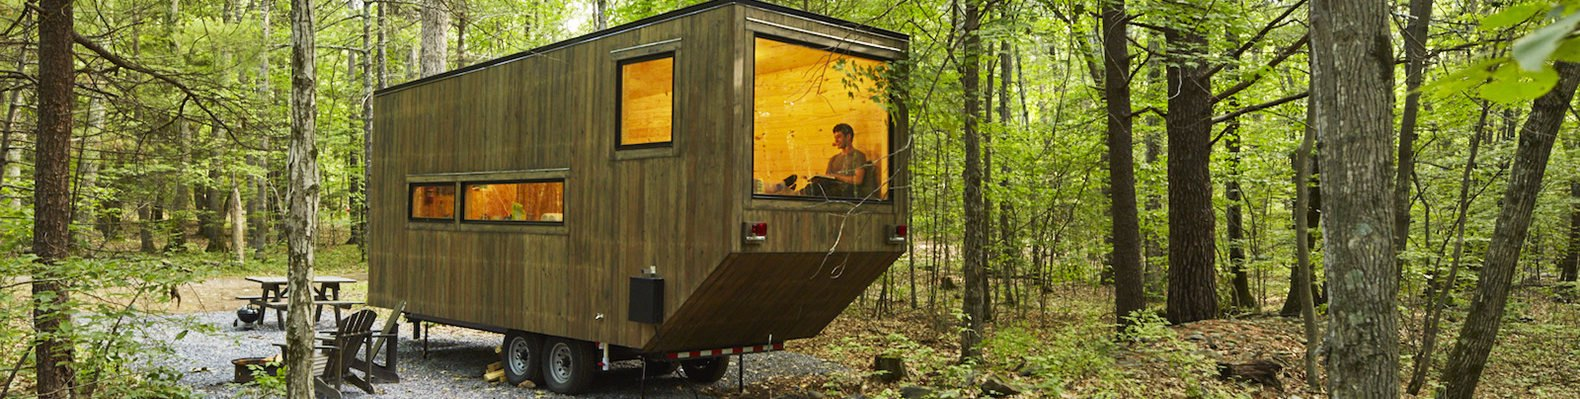 tiny house rental startup getaway scores 15 million in funding